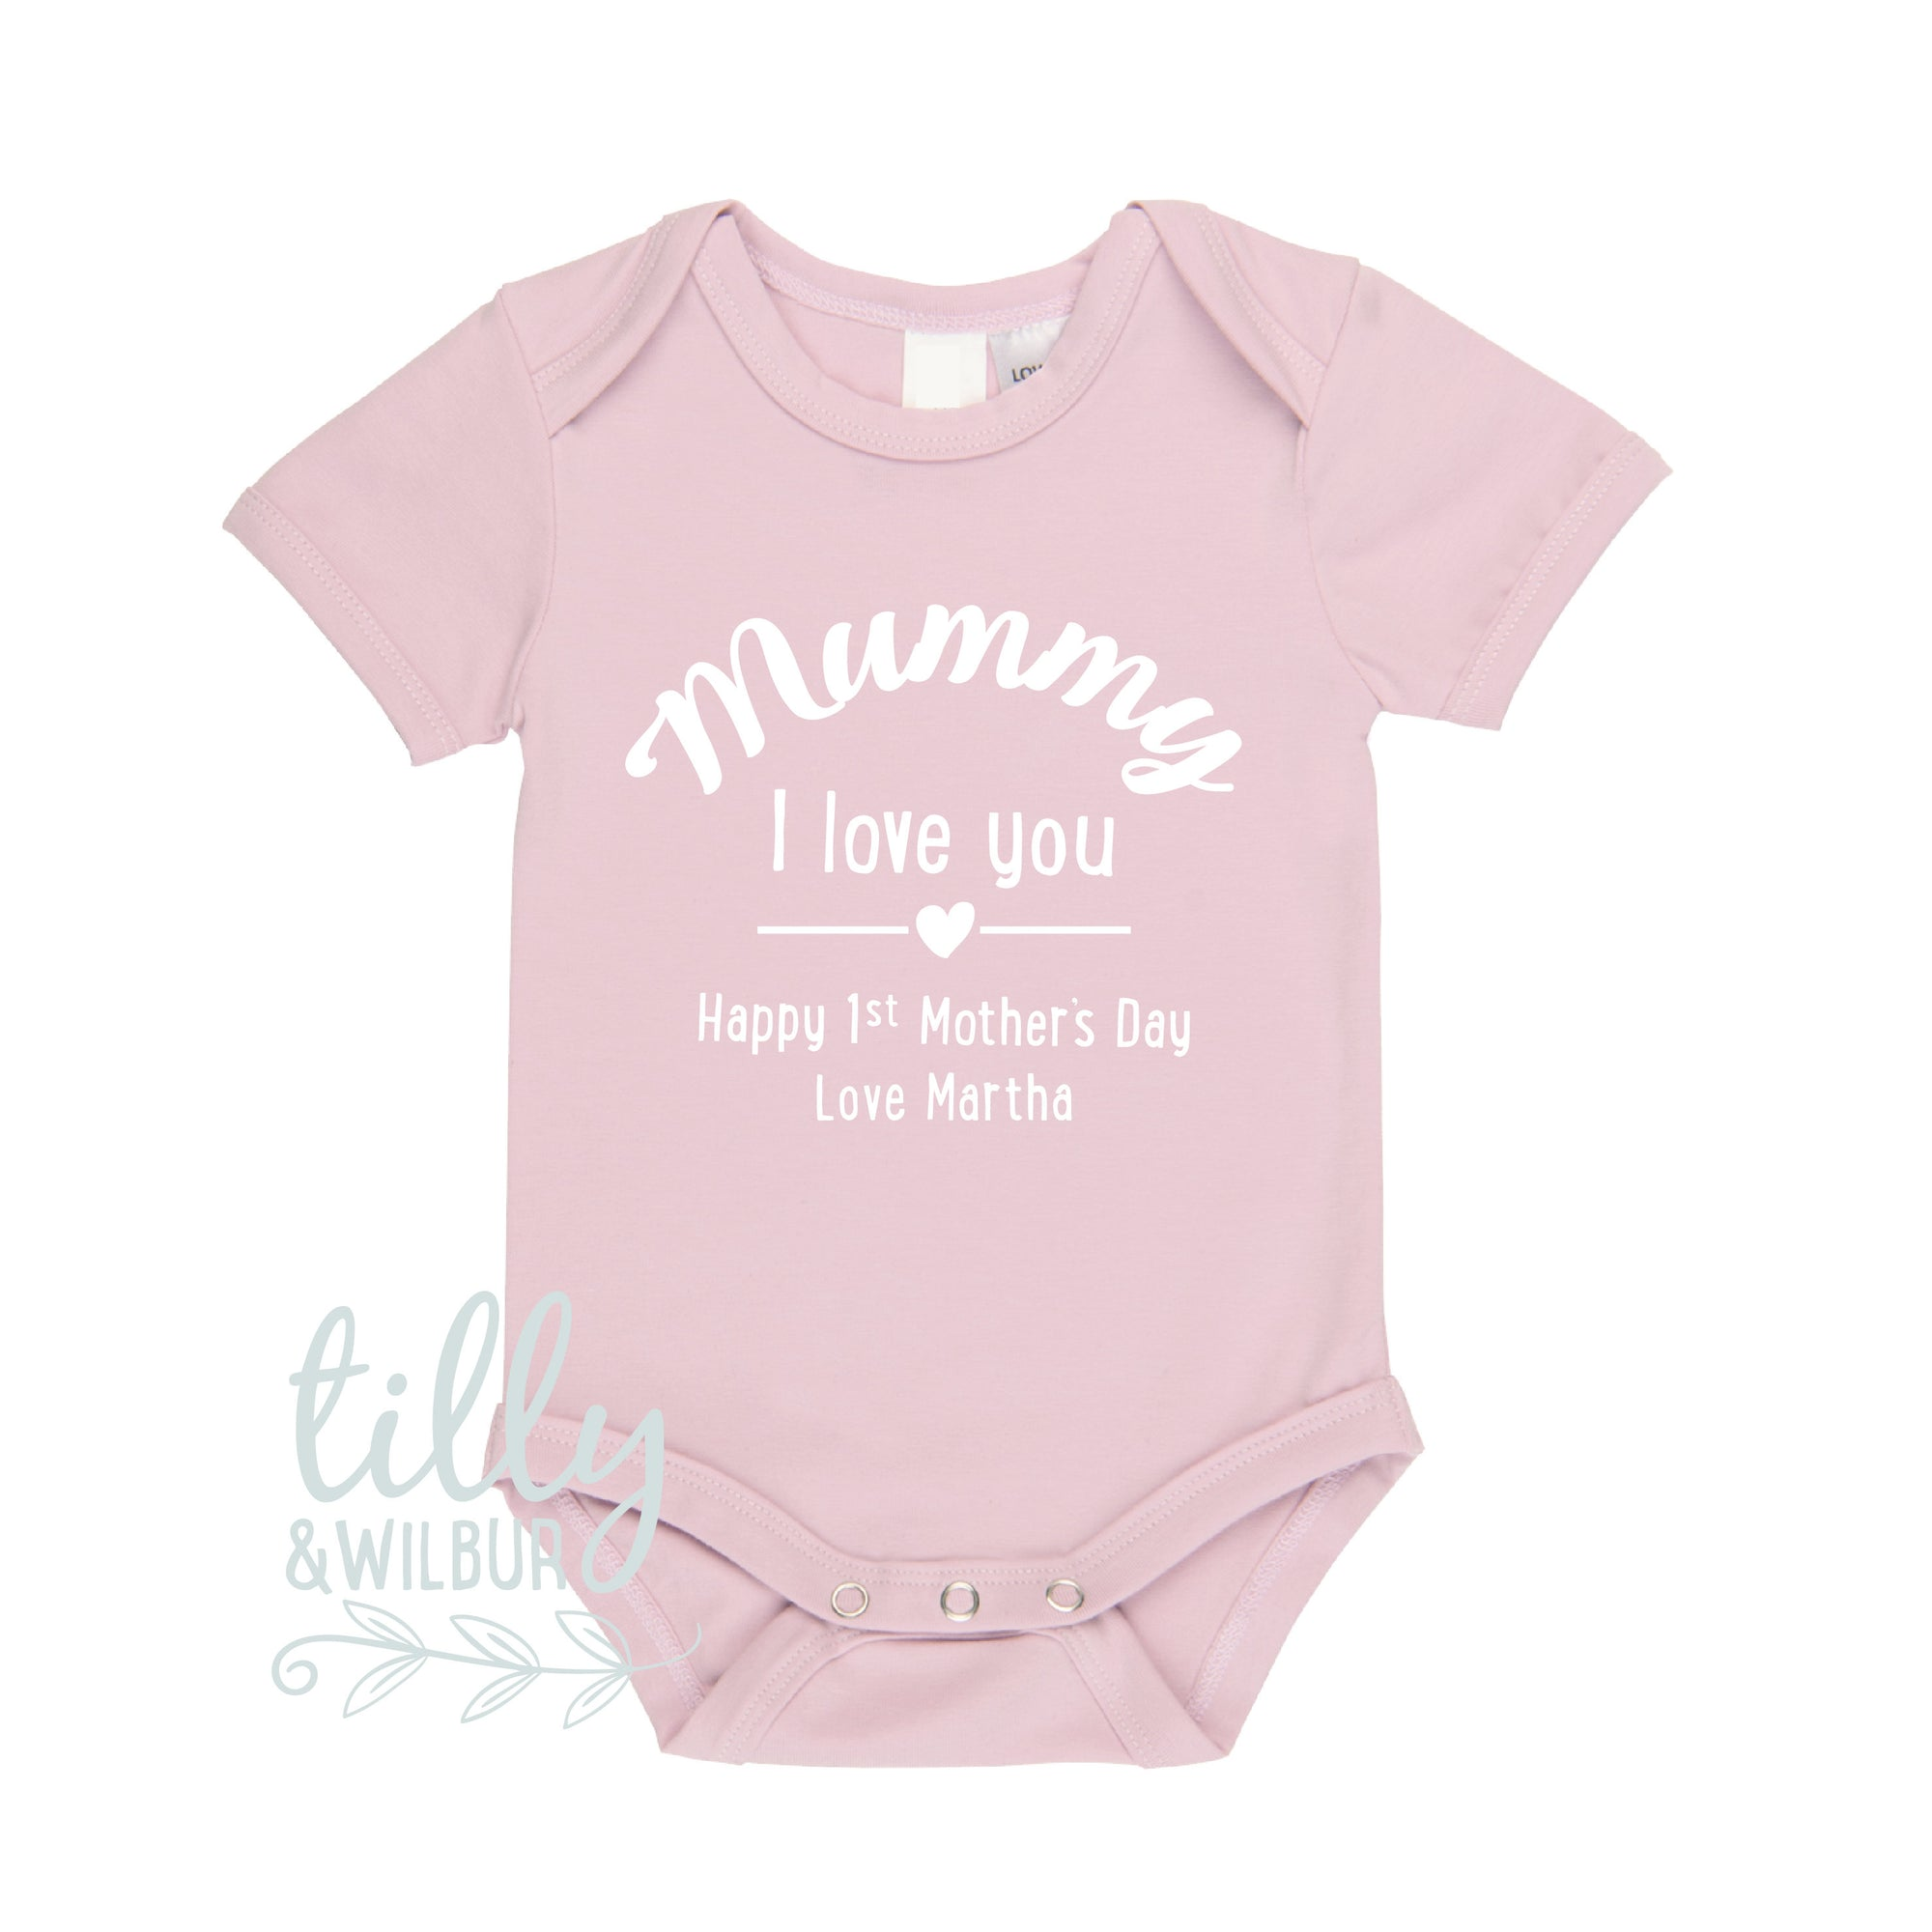 Mummy I Love You Happy First Mother's Day Personalised Baby Bodysuit, 1st Mother's Day Gift, First Mothers Day, Mothers Day Outfit For Baby